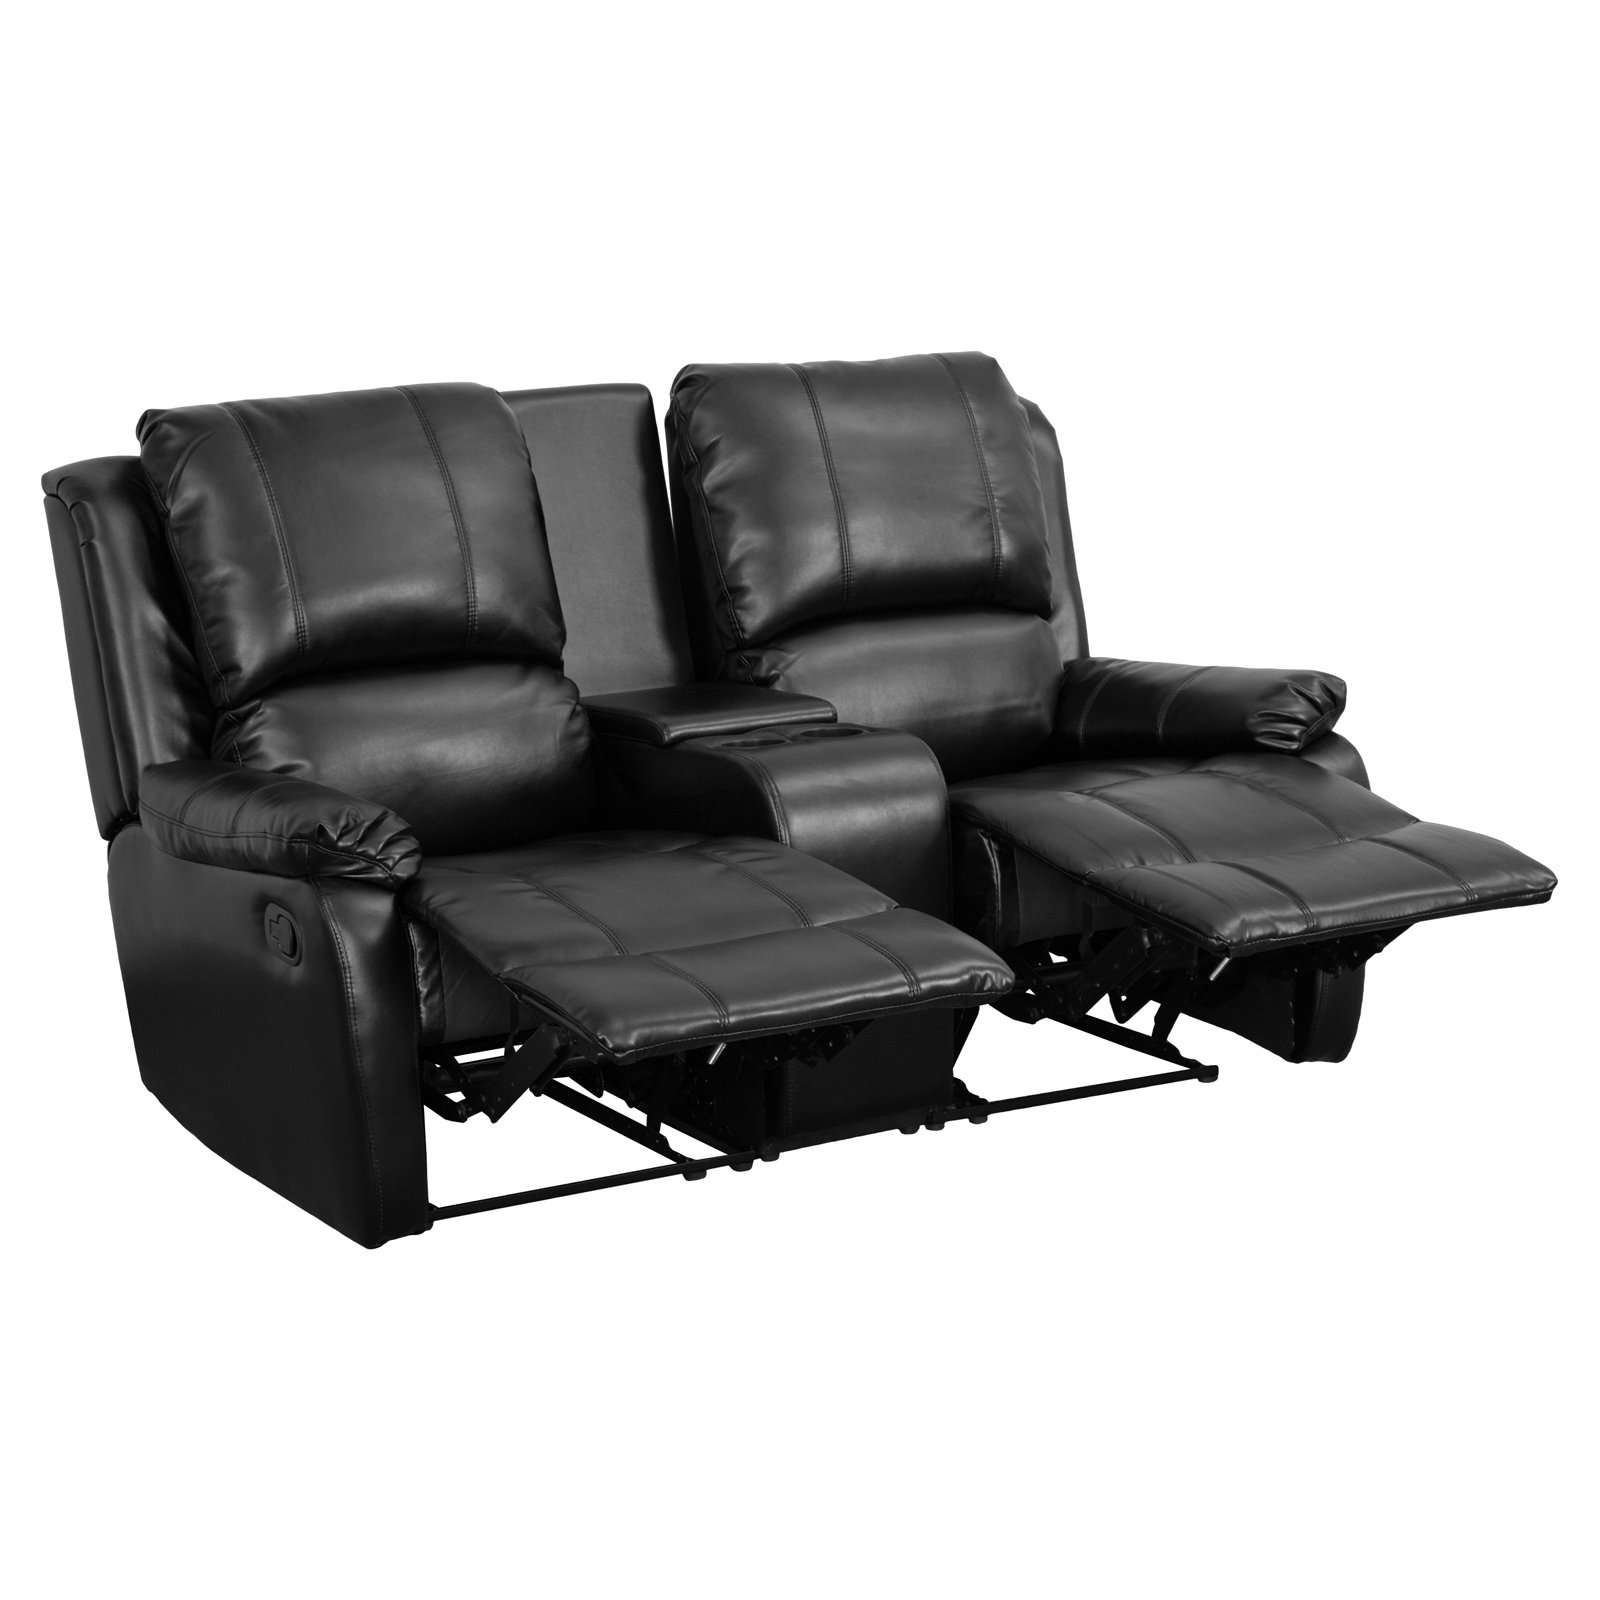 Flash Furniture Allure Series 2-Seat Reclining Pillow Back Leather Theater Seating Unit with Cup Holders